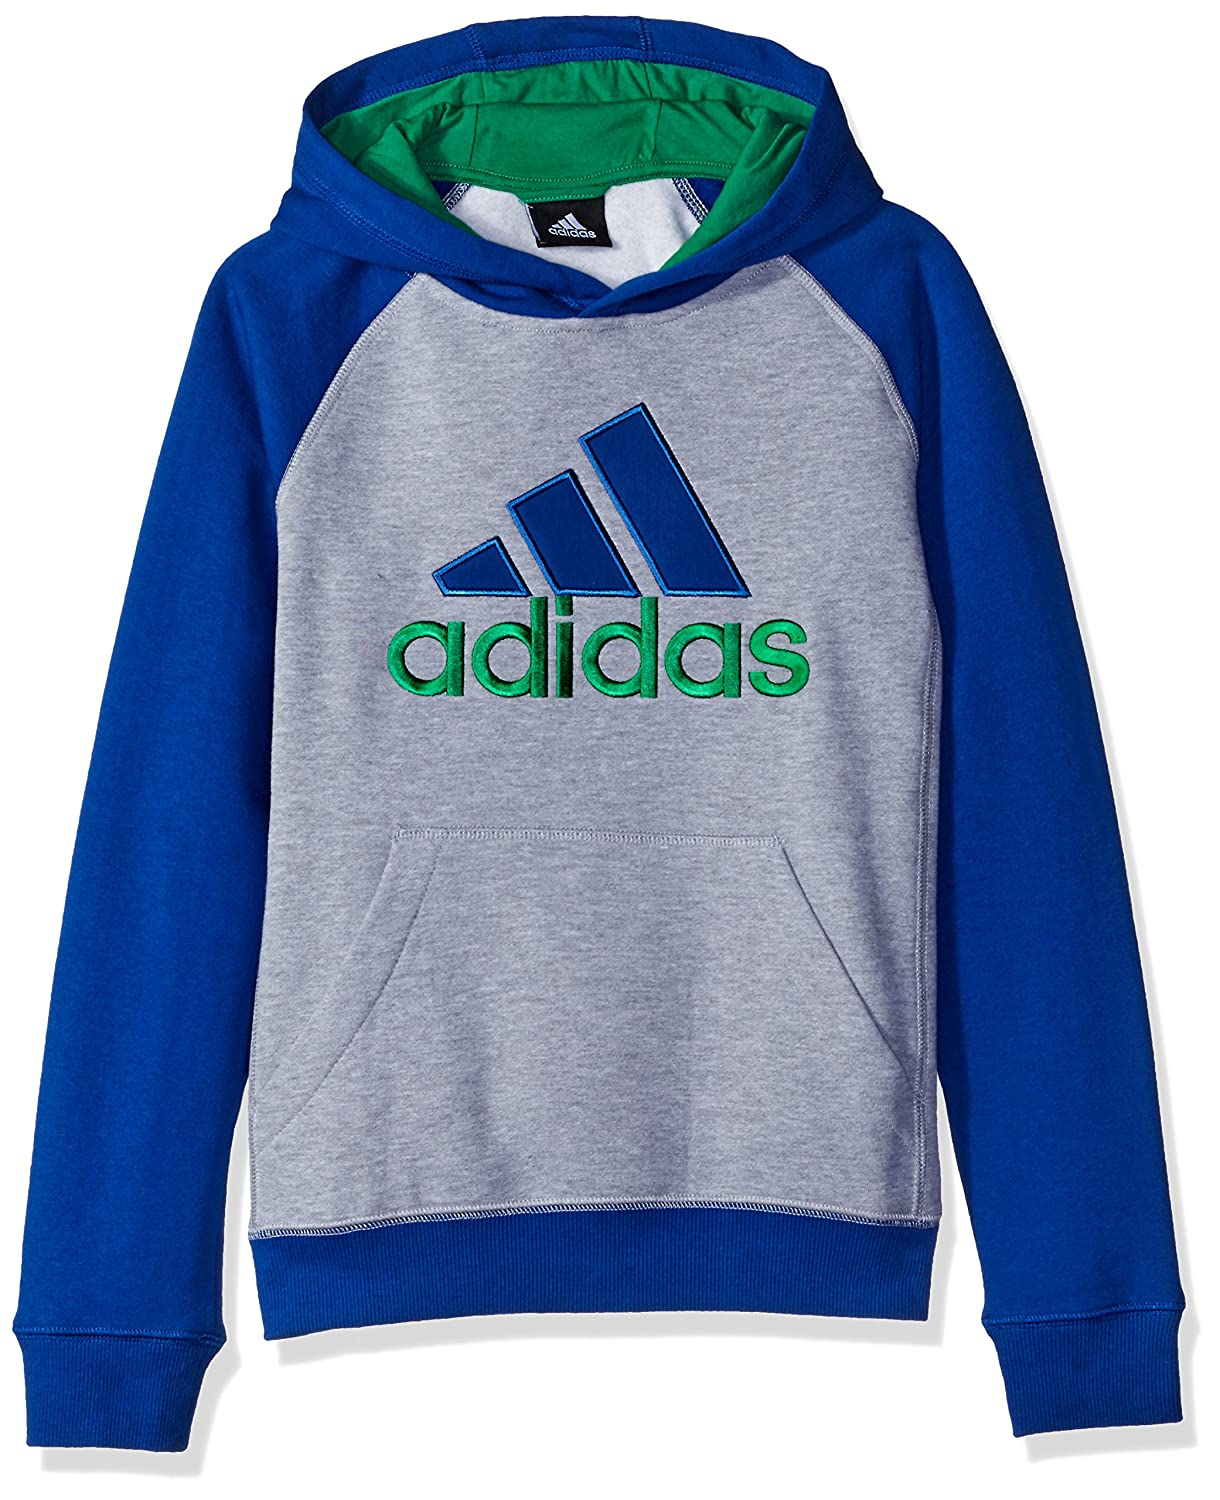 adidas Boys' Fleece Blocked Hoodie BABA5GU9 A3G